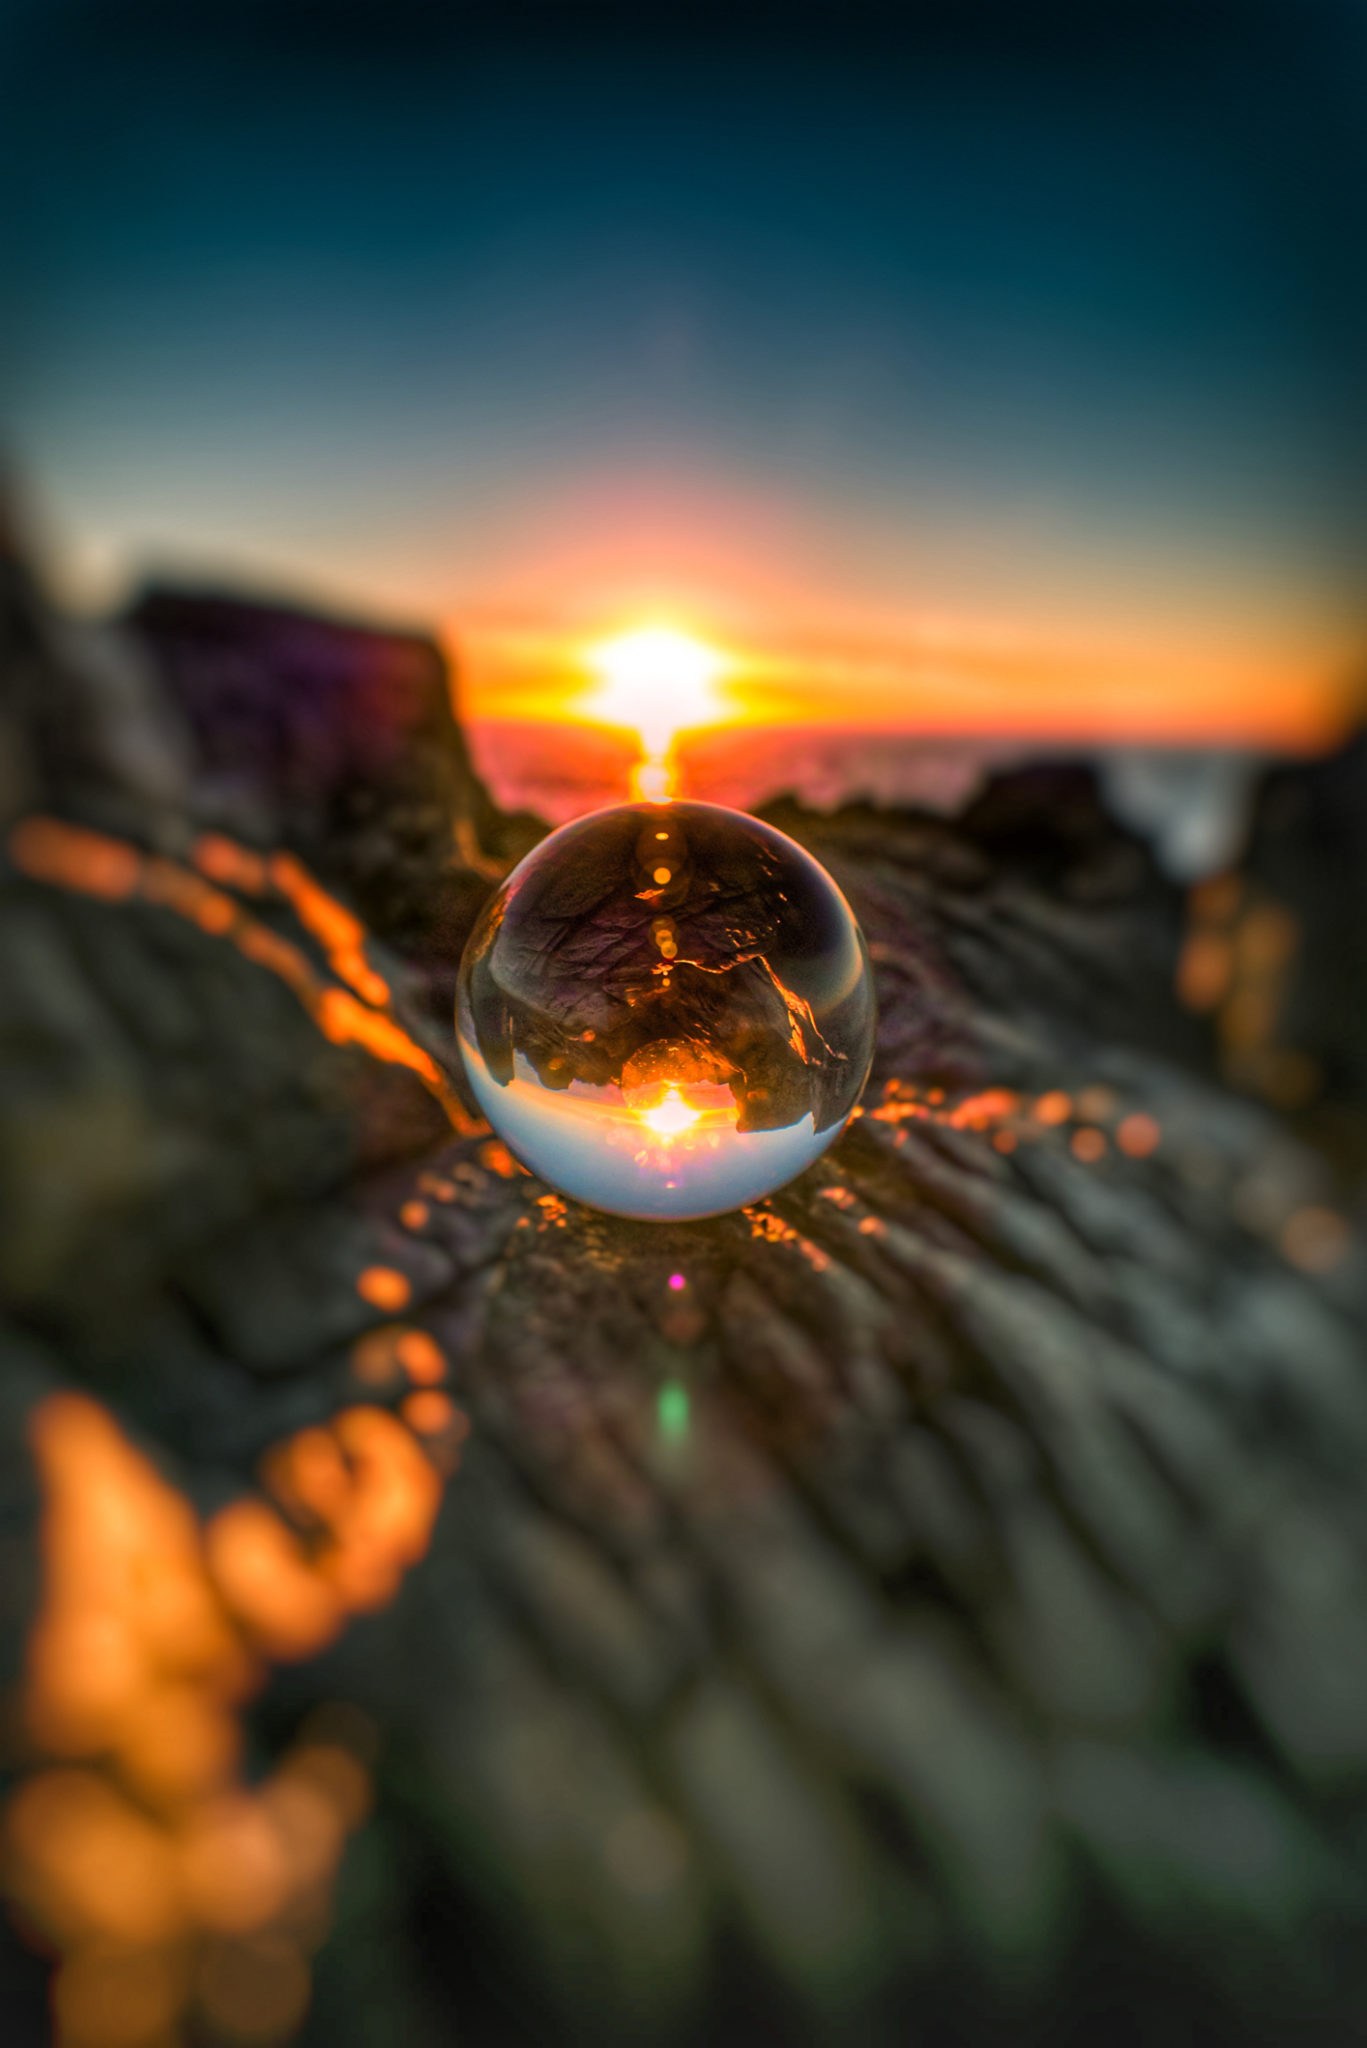 Glass ball reflection of the sunrise over the ocean.